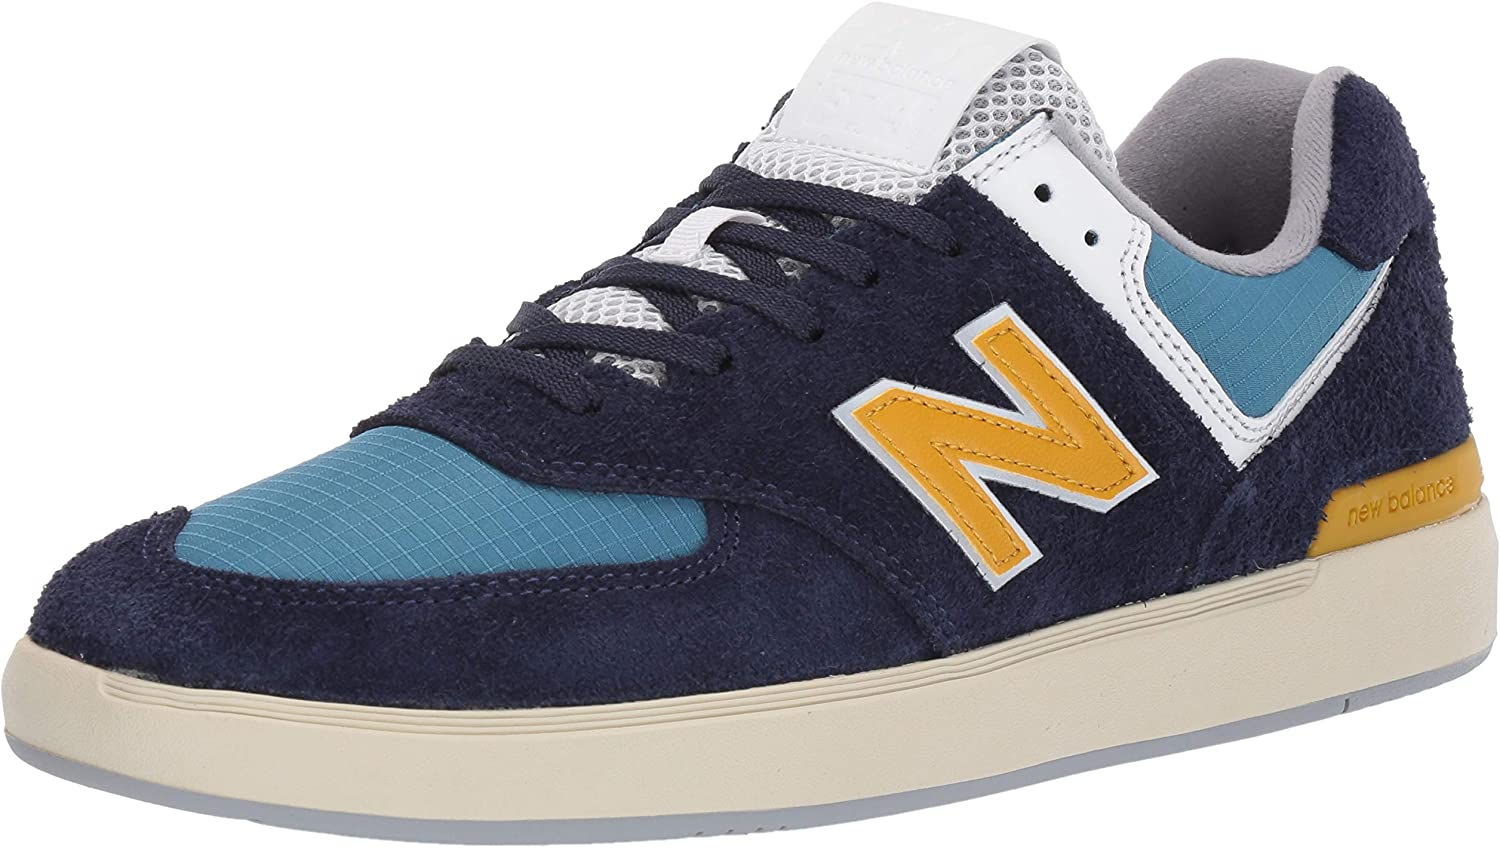 New Balance AM574 Footwear bluee